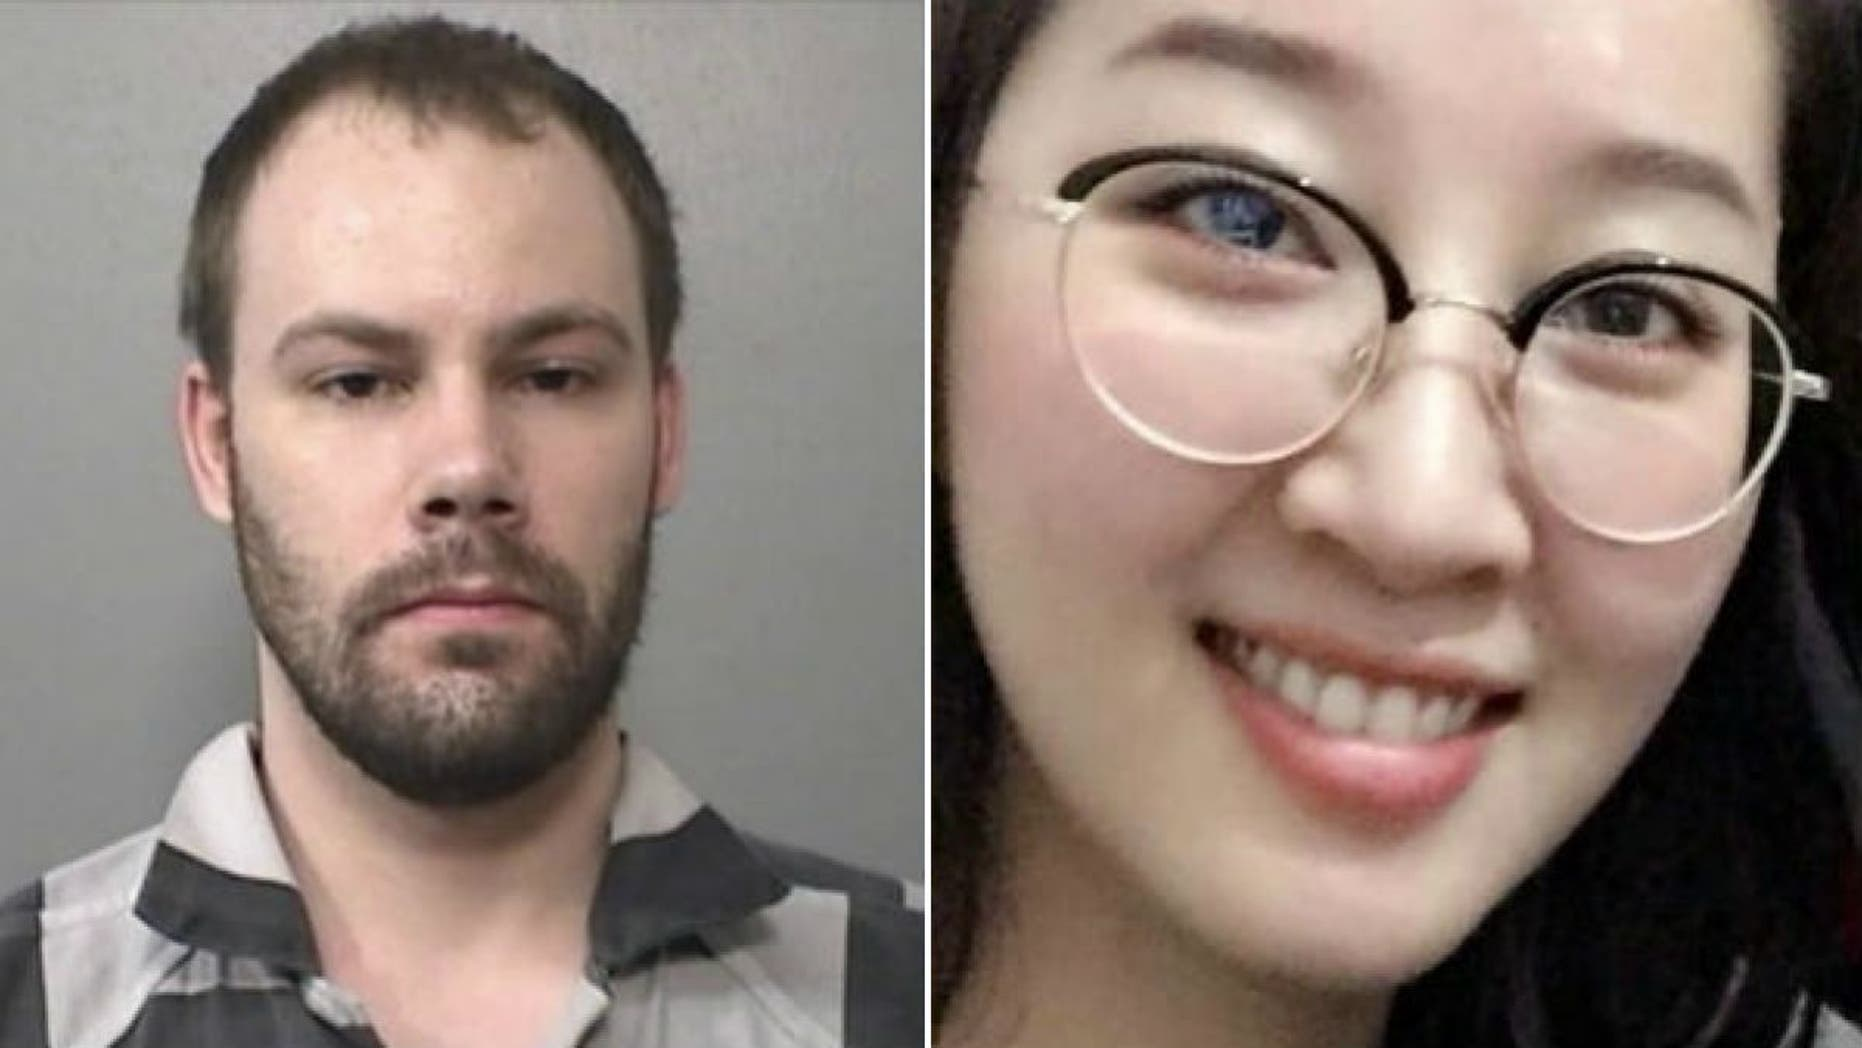 Brendt Christensen will serve life in prison for the death of Yingying Zhang. Prosecutors said Christensen raped, choked and stabbed Zhang before beating her to death with a bat and decapitating her. Christensen has never revealed what he did with Zhang's remains. (FILE)